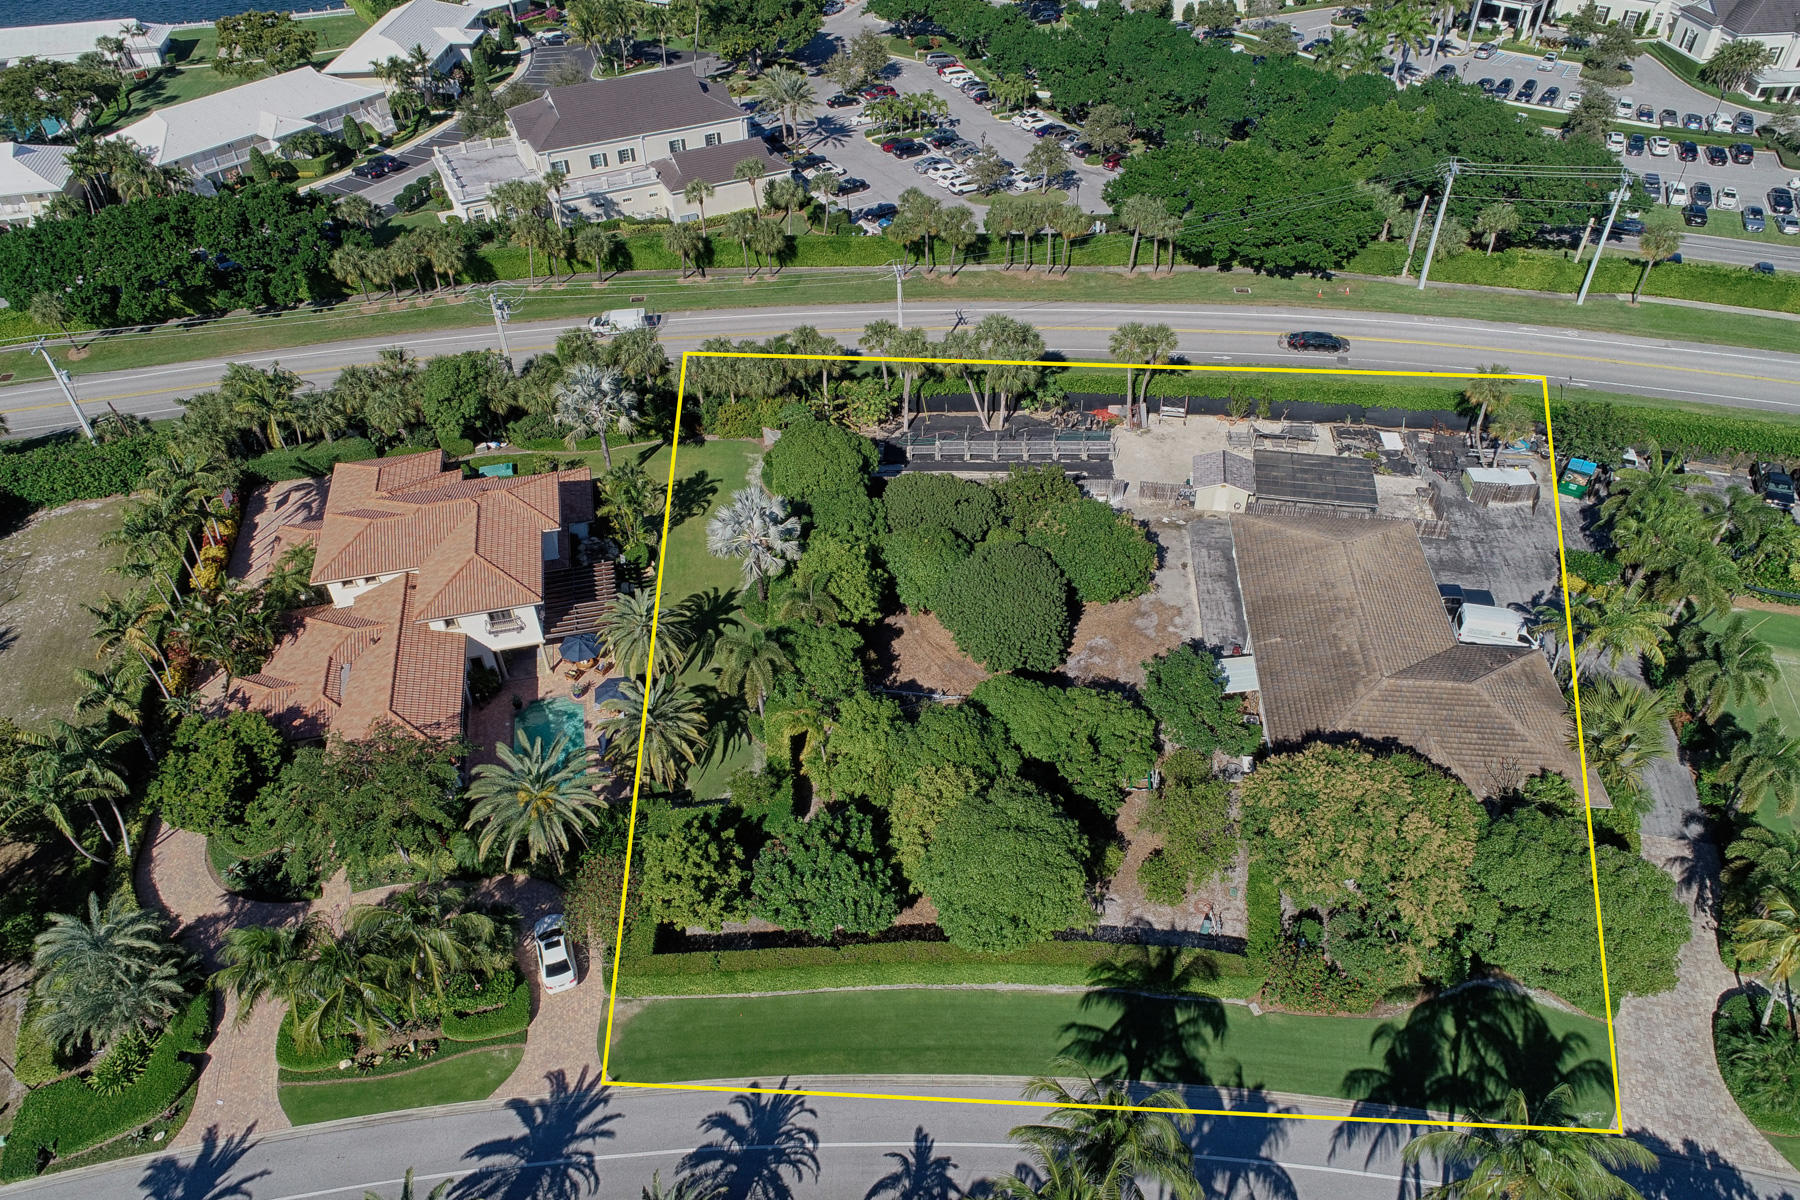 0 Old Harbour Lot 42c Road, North Palm Beach, Florida 33408, ,C,Single family,Old Harbour Lot 42c,RX-10501104